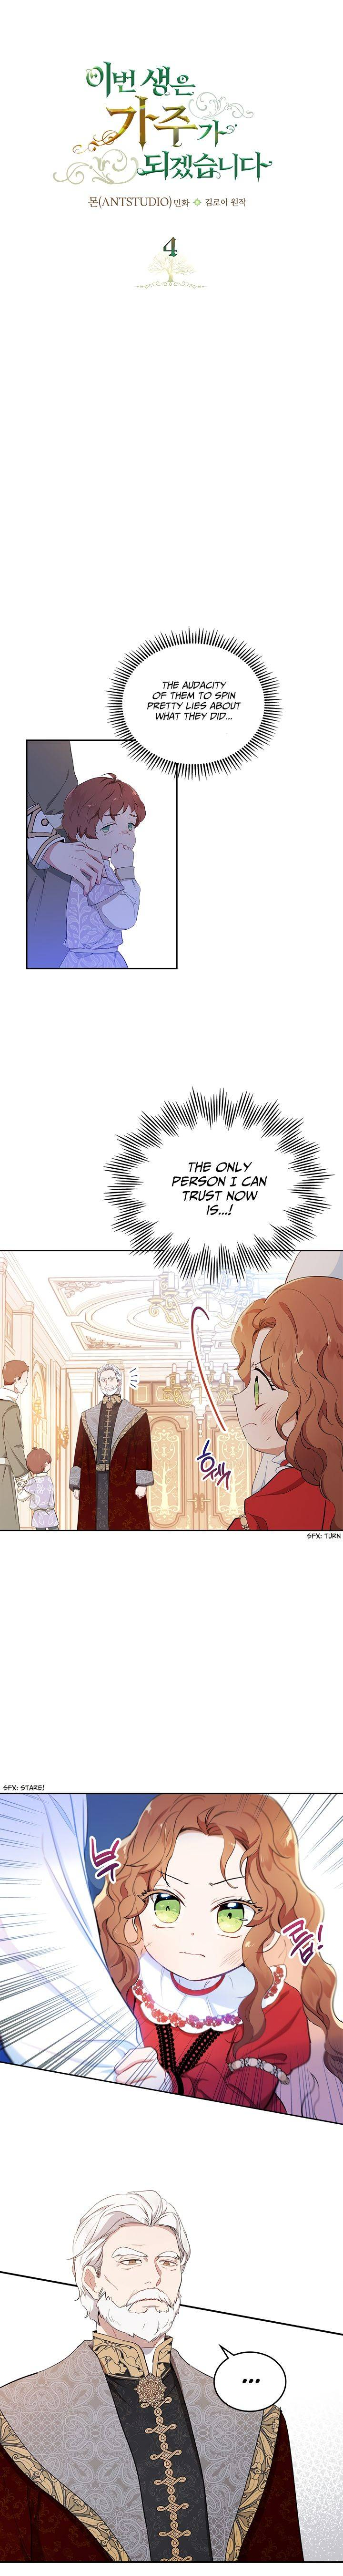 I'll Be The Matriarch In This Life - chapter 4 - #1